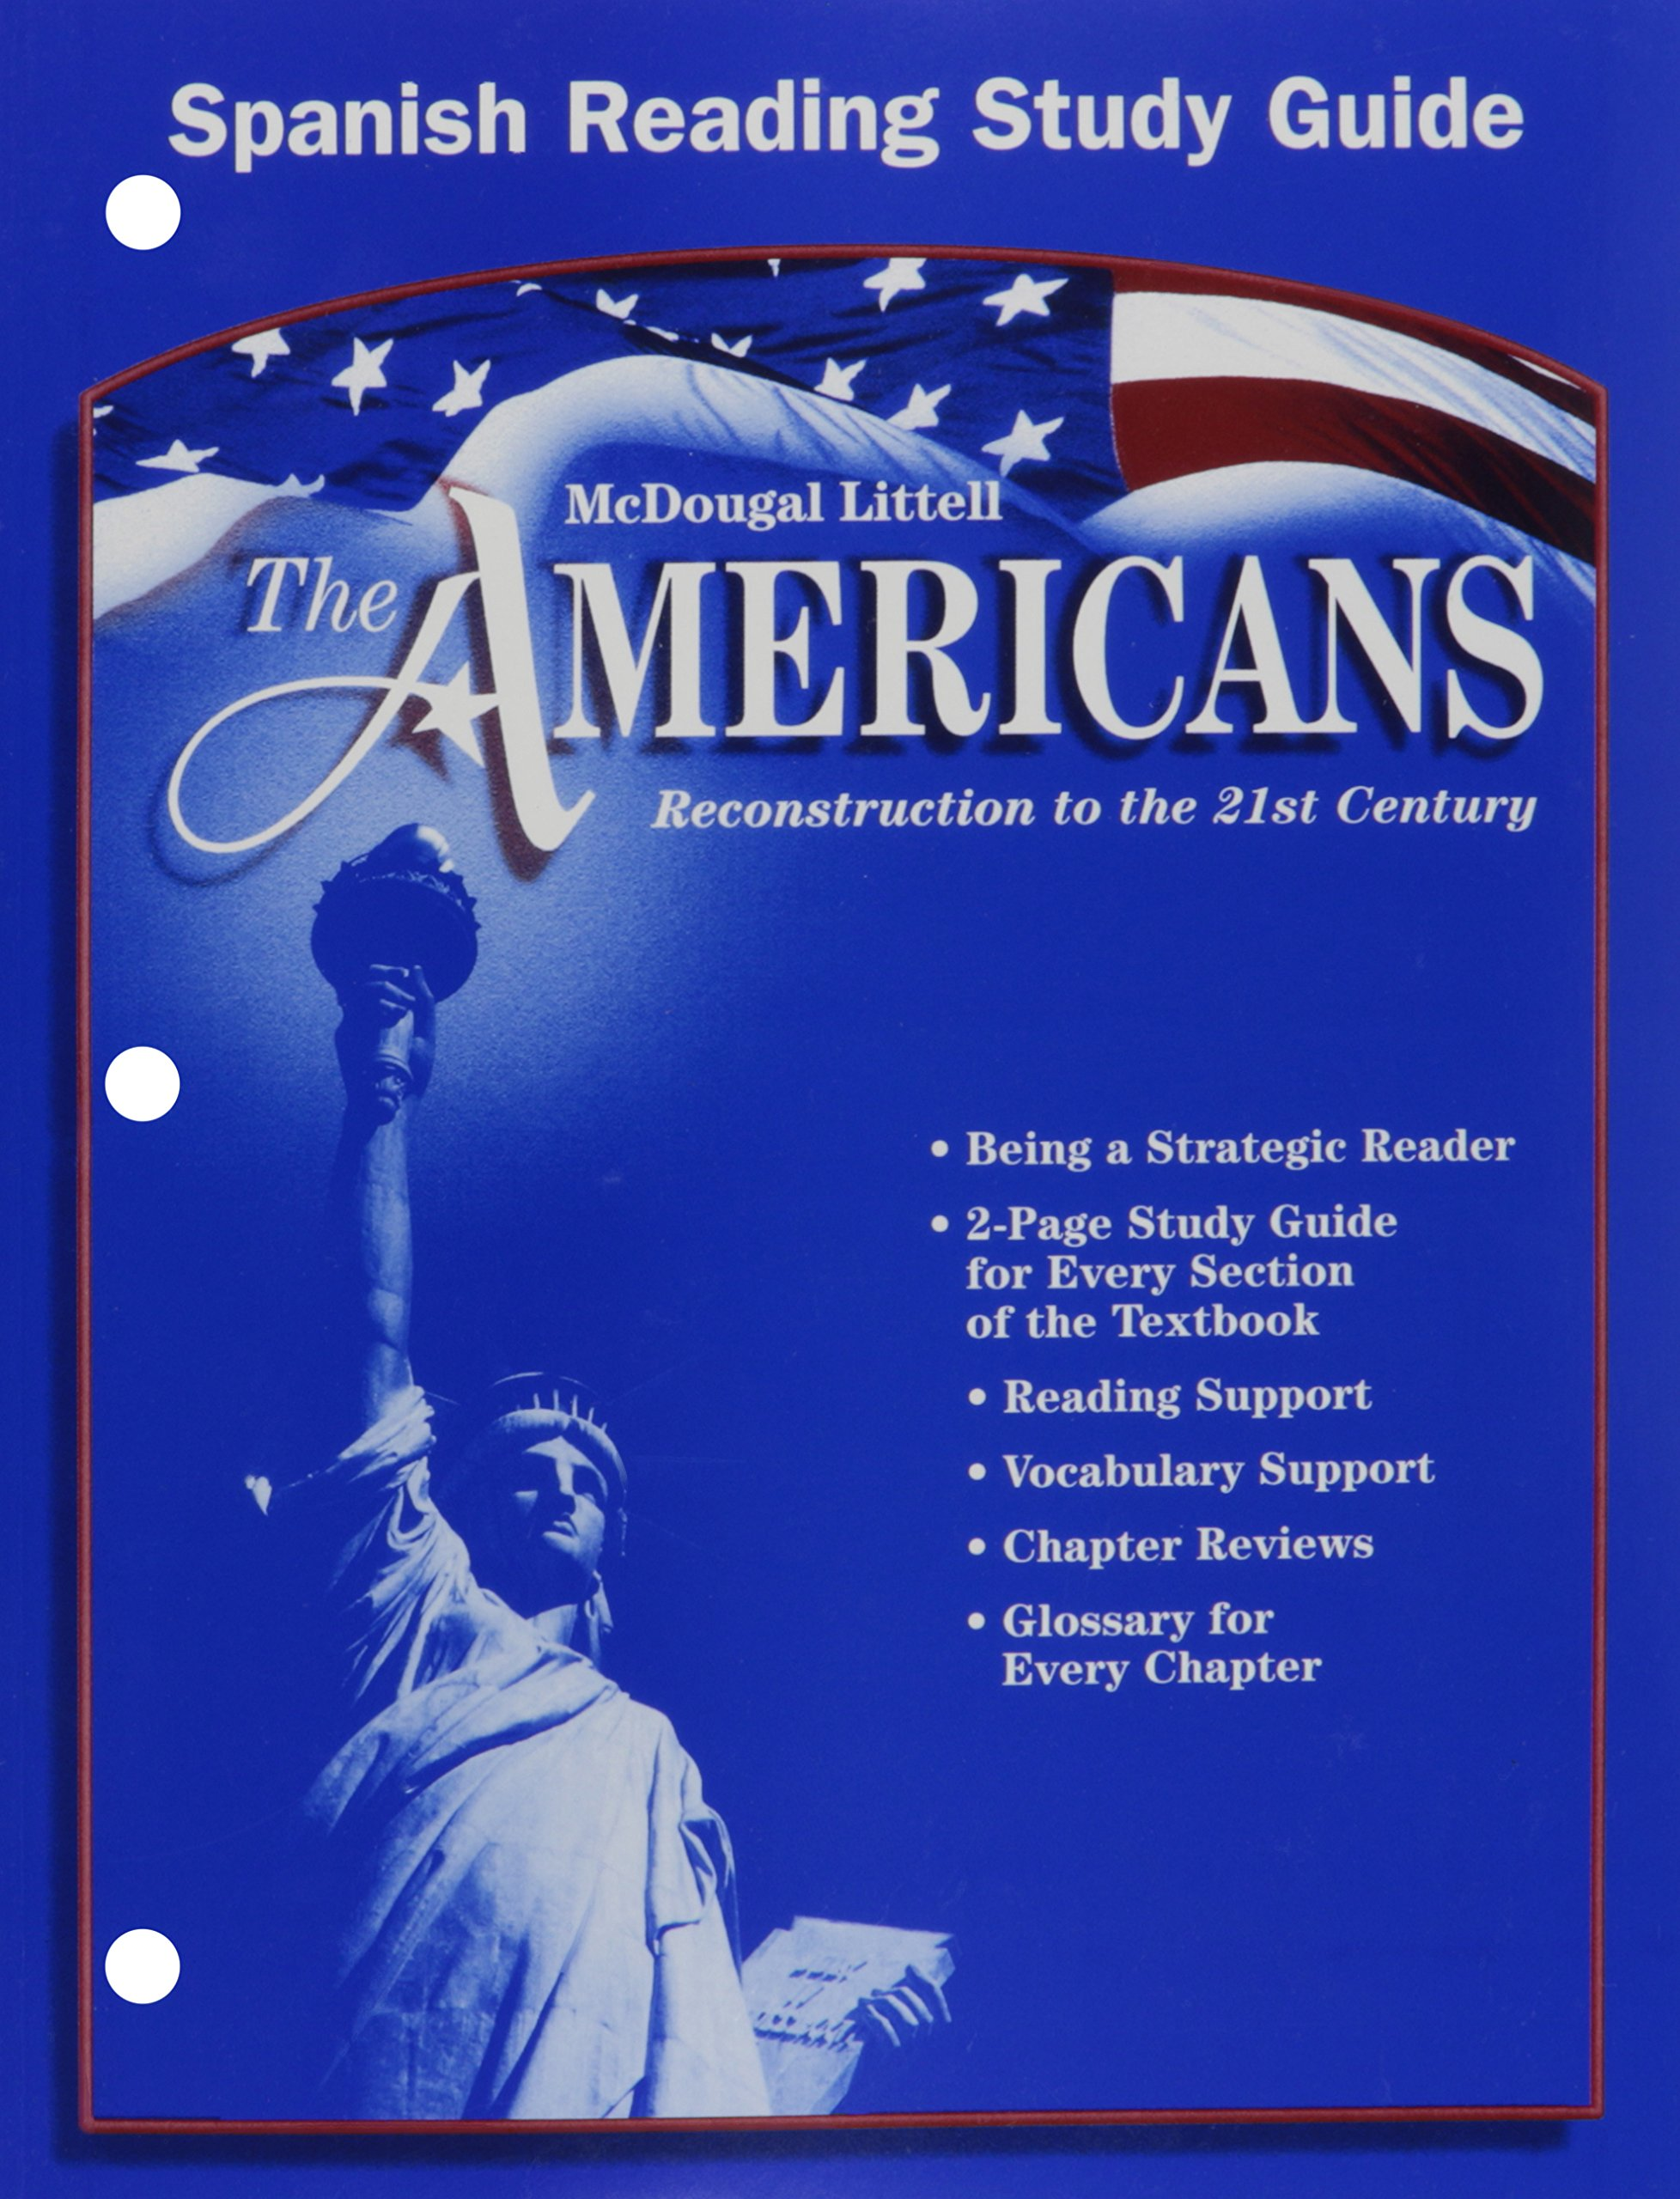 Download The Americans: Reconstruction to the 21st Century: Reading Study Guide (Spanish) (Spanish Edition) PDF